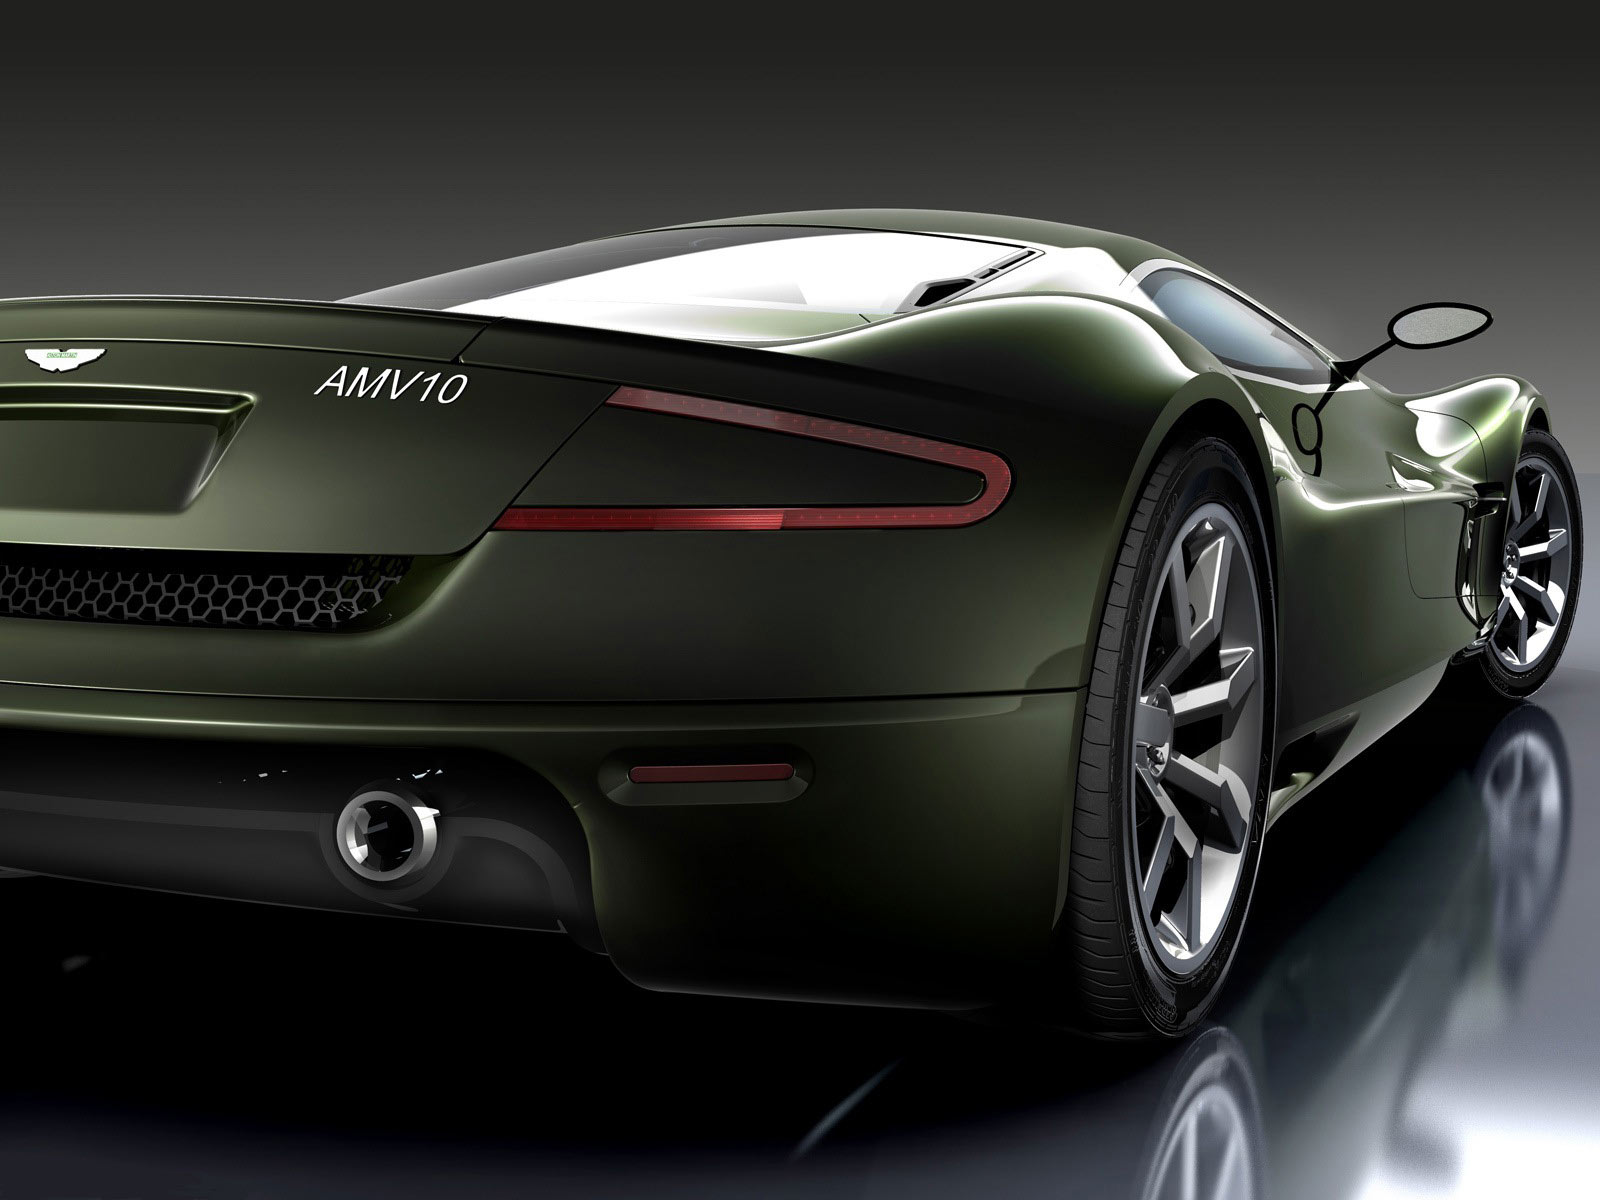 http://3.bp.blogspot.com/-4wRpEJlQ1HQ/ToJOipB9-7I/AAAAAAAAAwU/gKj64OLvo6M/s1600/Aston_Martin_AMV10_sports_cars_wallpapers.jpg